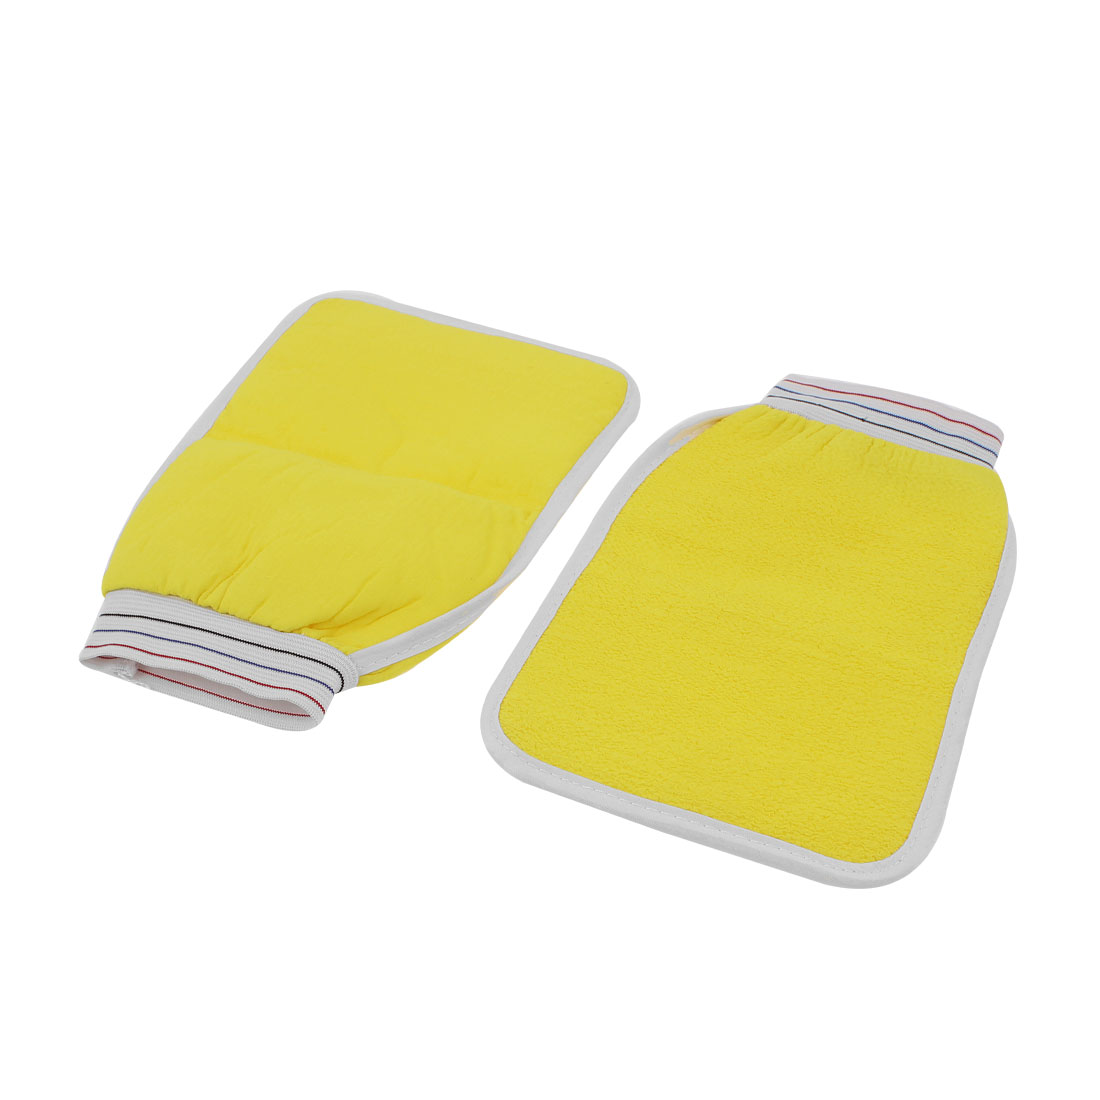 Elastic Cuff Double Side Shower Bath Wash Massage Glove Scrubber Yellow 2pcs